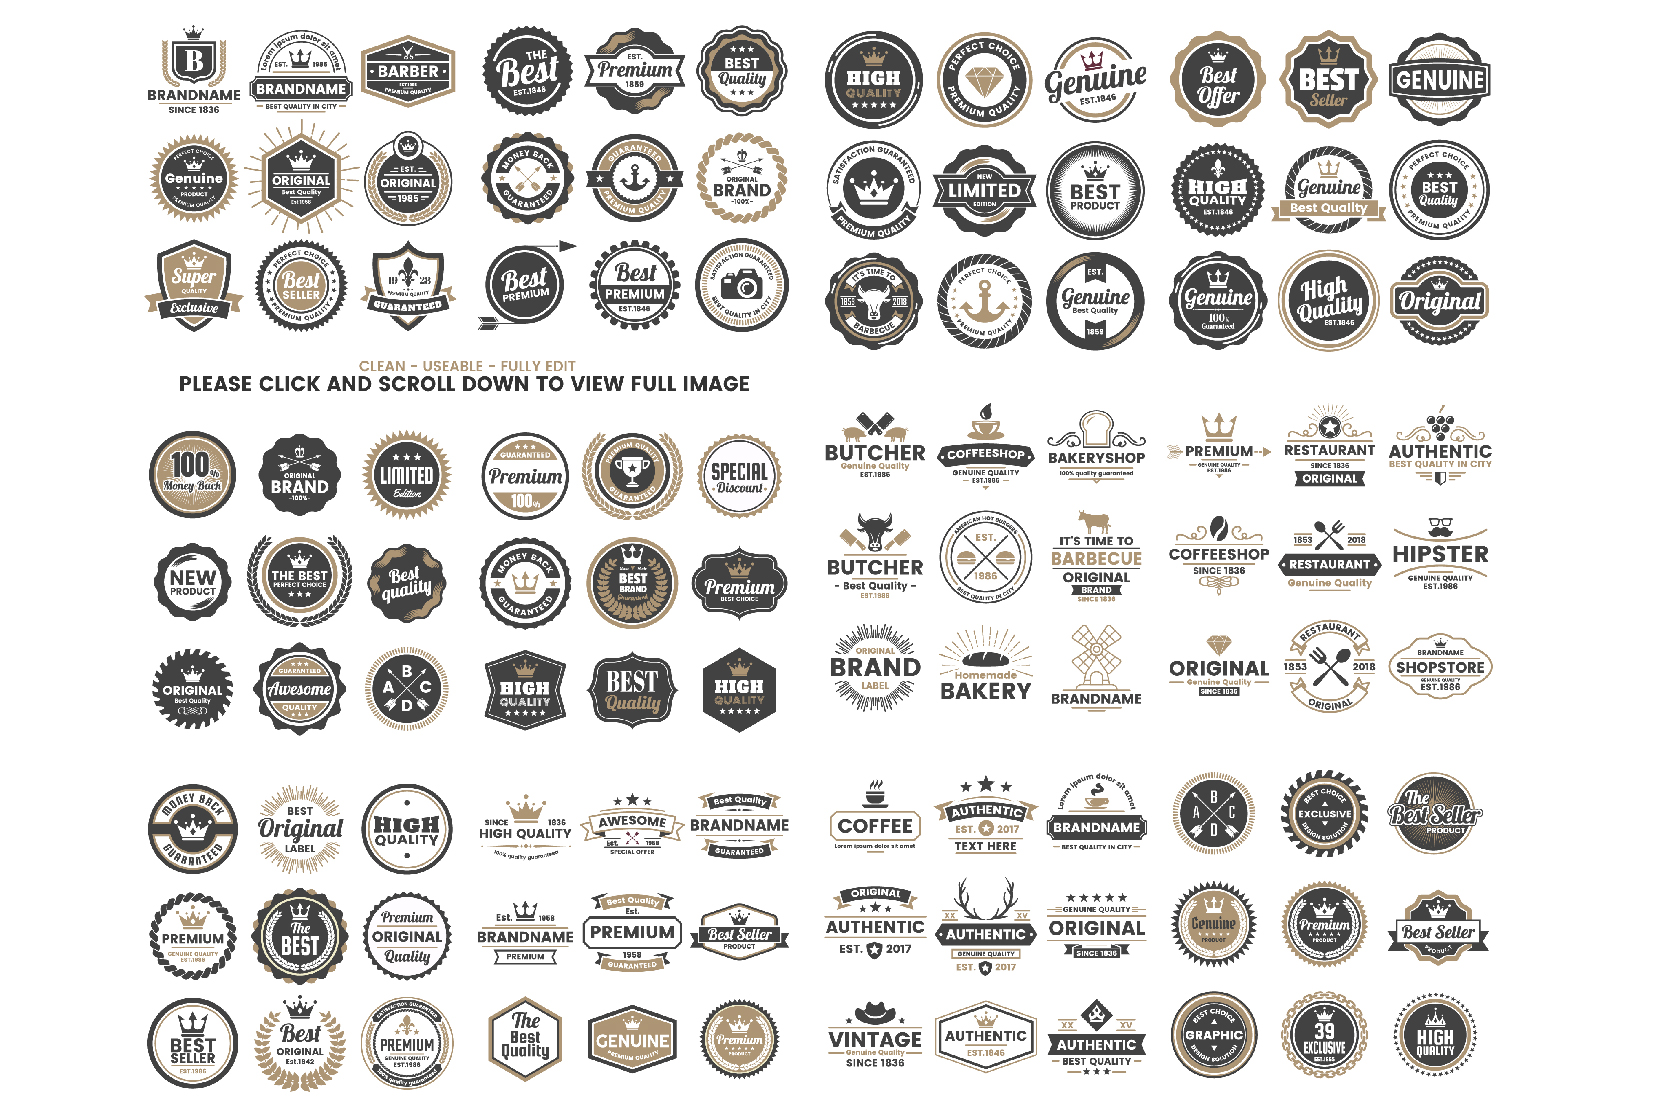 1207 Vintage Badge & Objects Vol.2 example image 3